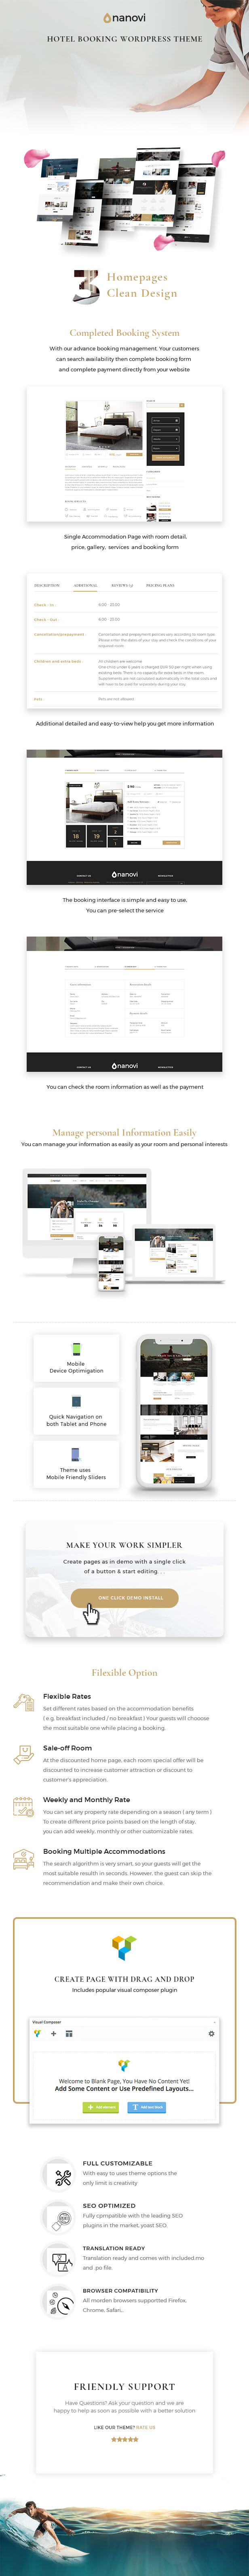 Nanovi - WordPress theme for resorts and hotels - 5